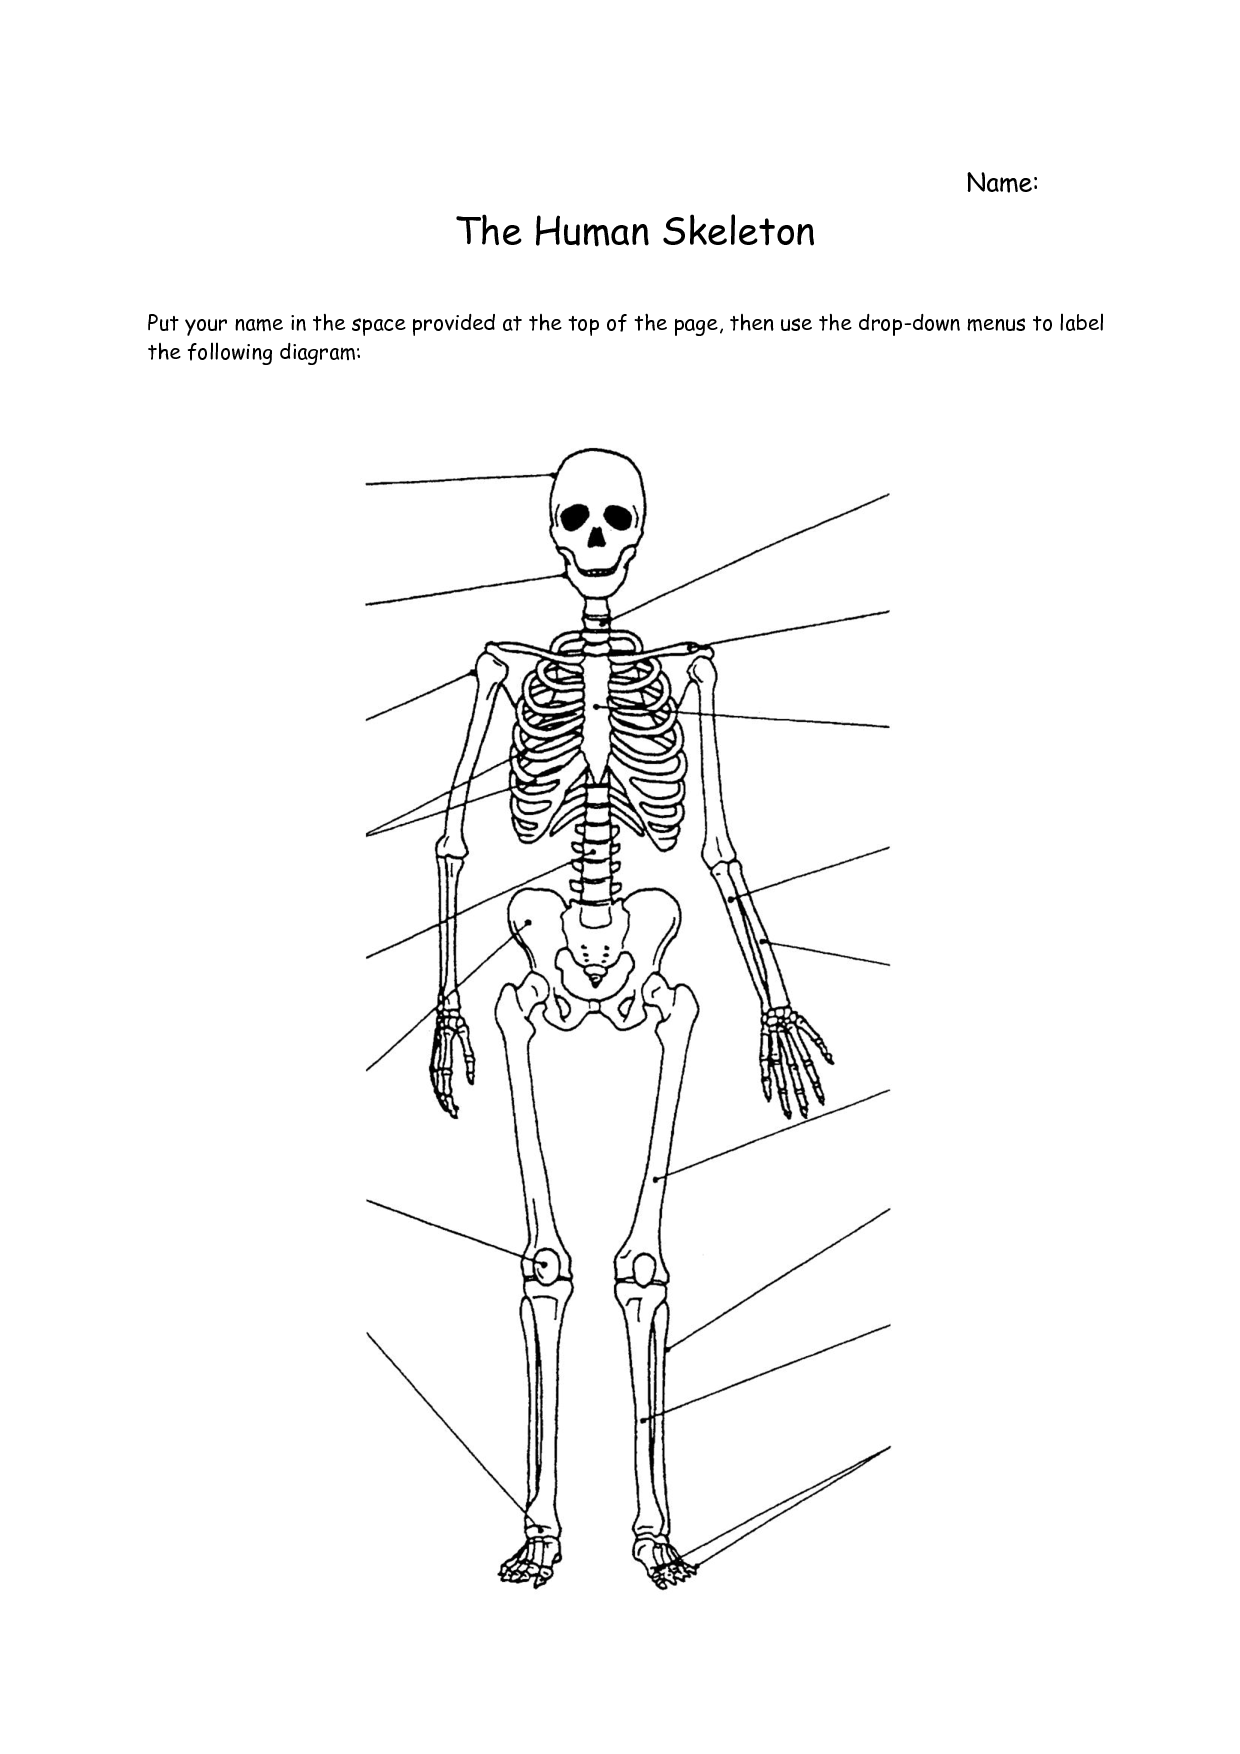 Free Worksheet Human Body Worksheets 17 best images about body worksheets on pinterest wear sunscreen parts and human muscles